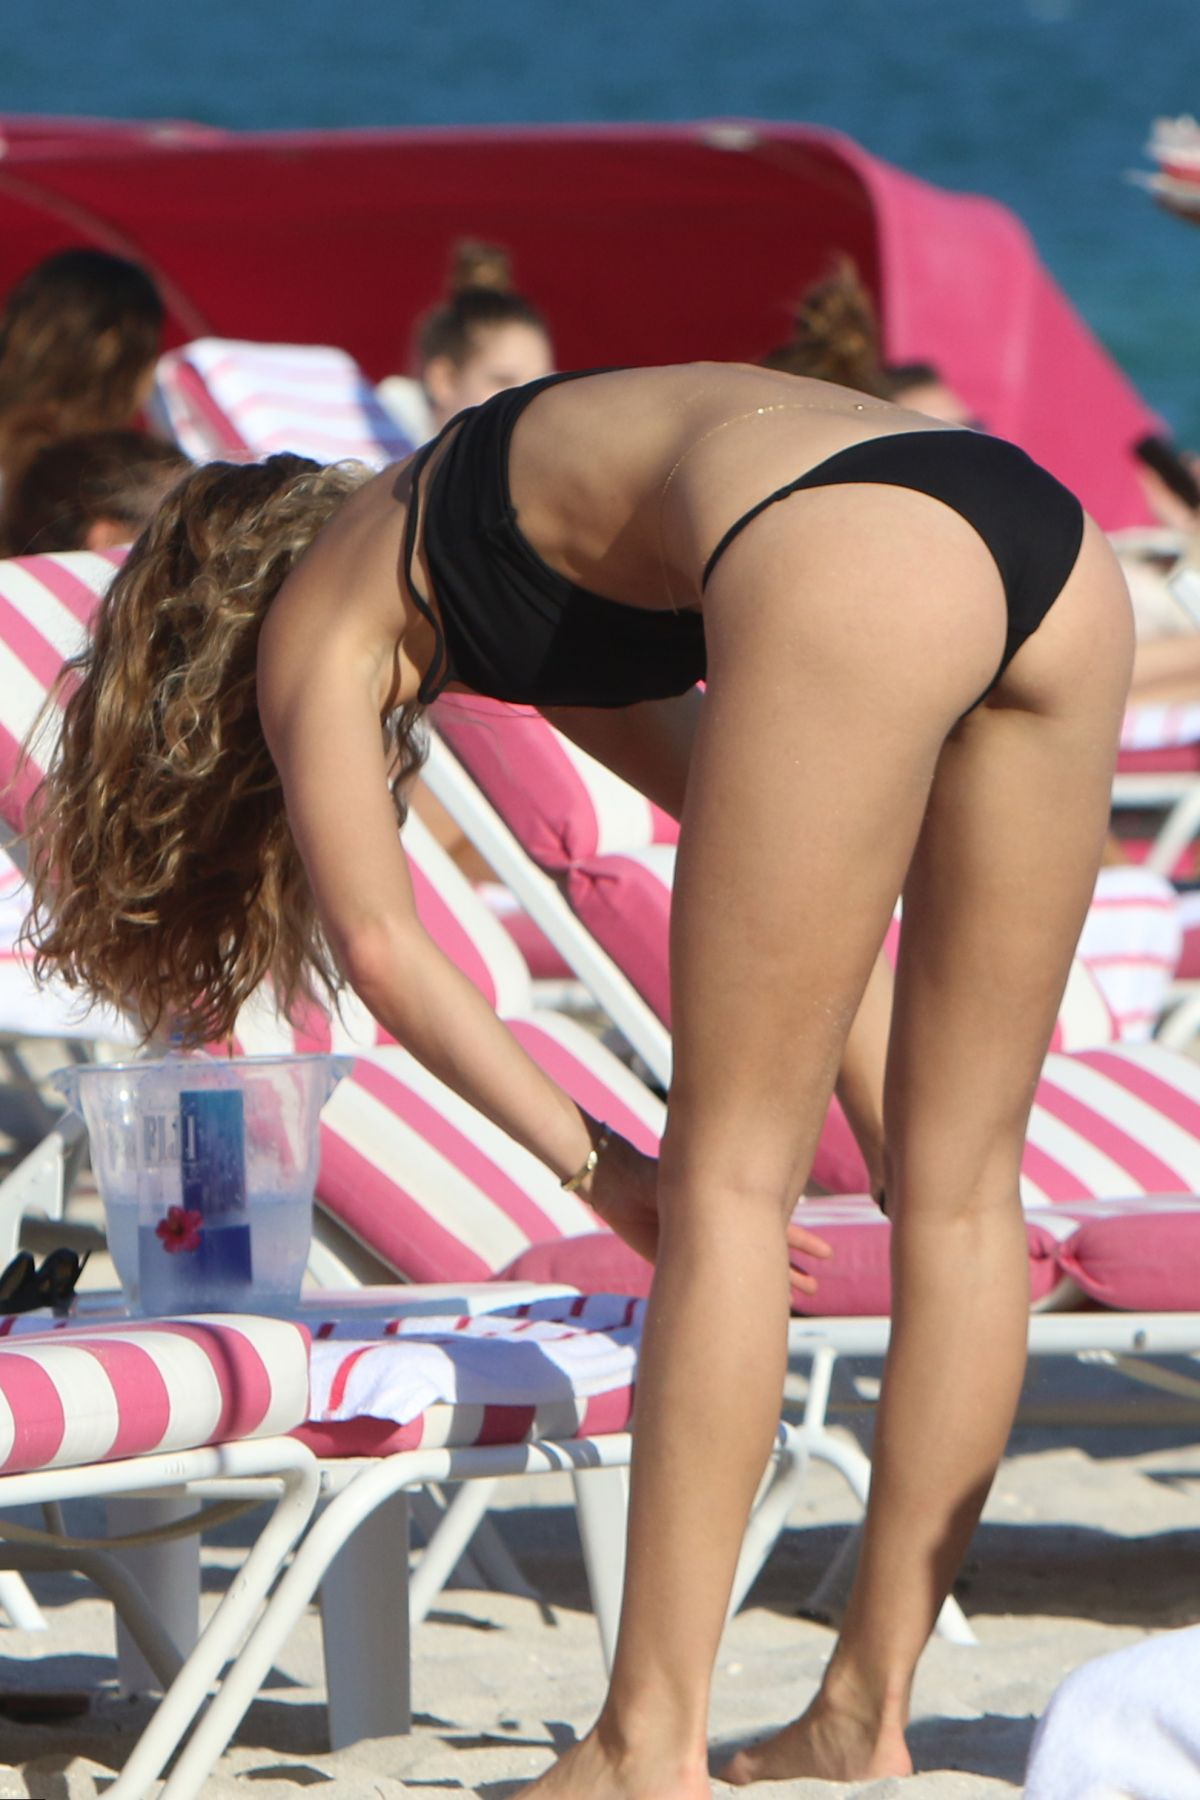 Lucy Aragon in Bikini does yoga on the beach in Miami Pic 7 of 35